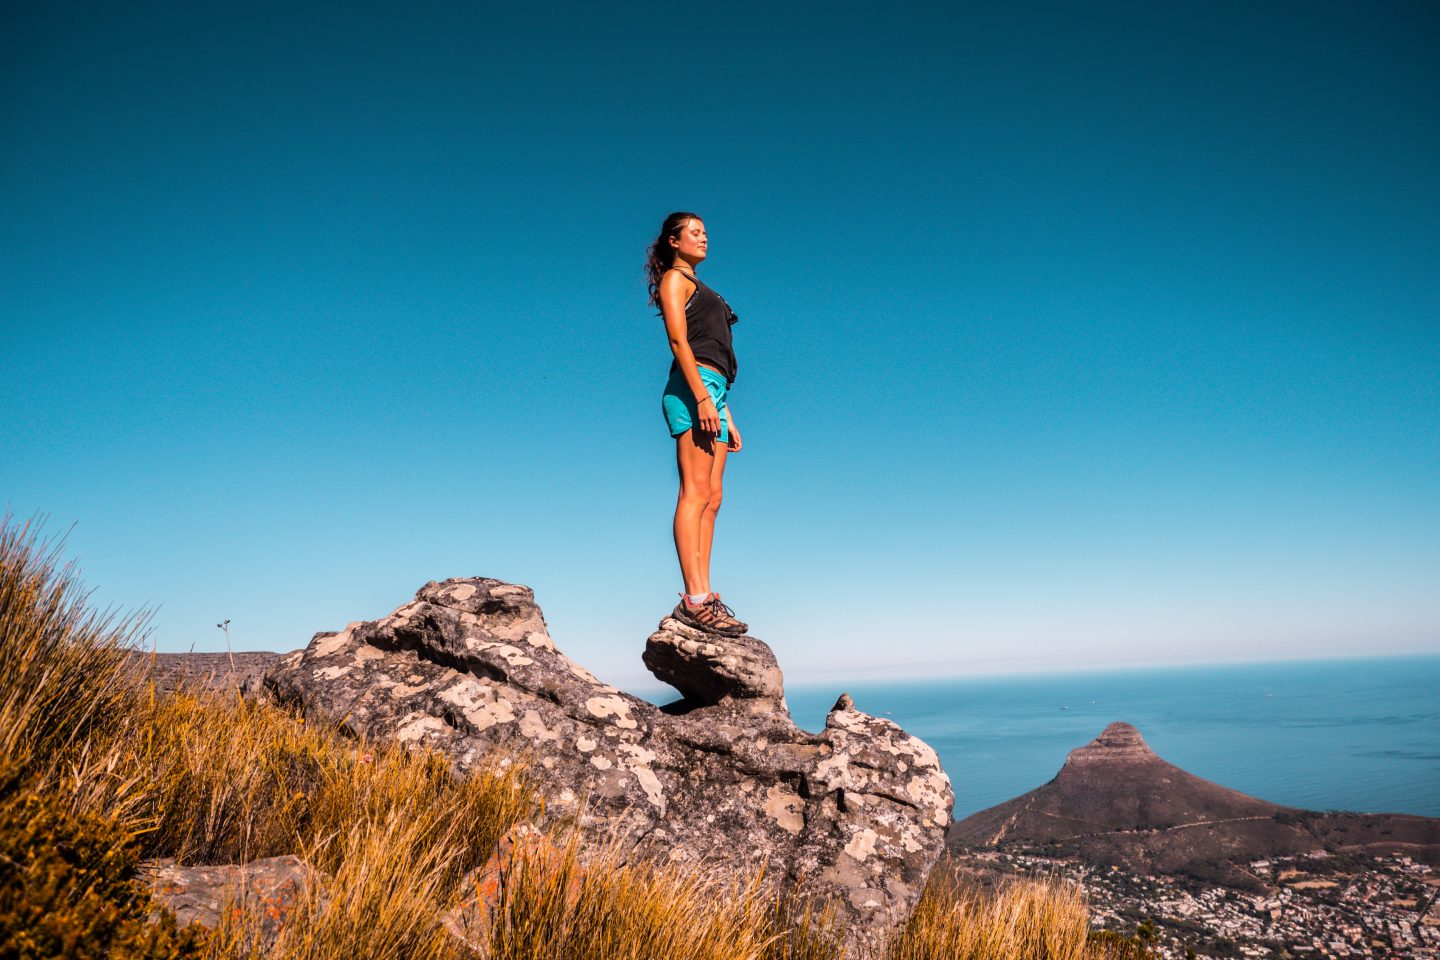 Woman with her hiking gear, a must-have for your south africa packing list